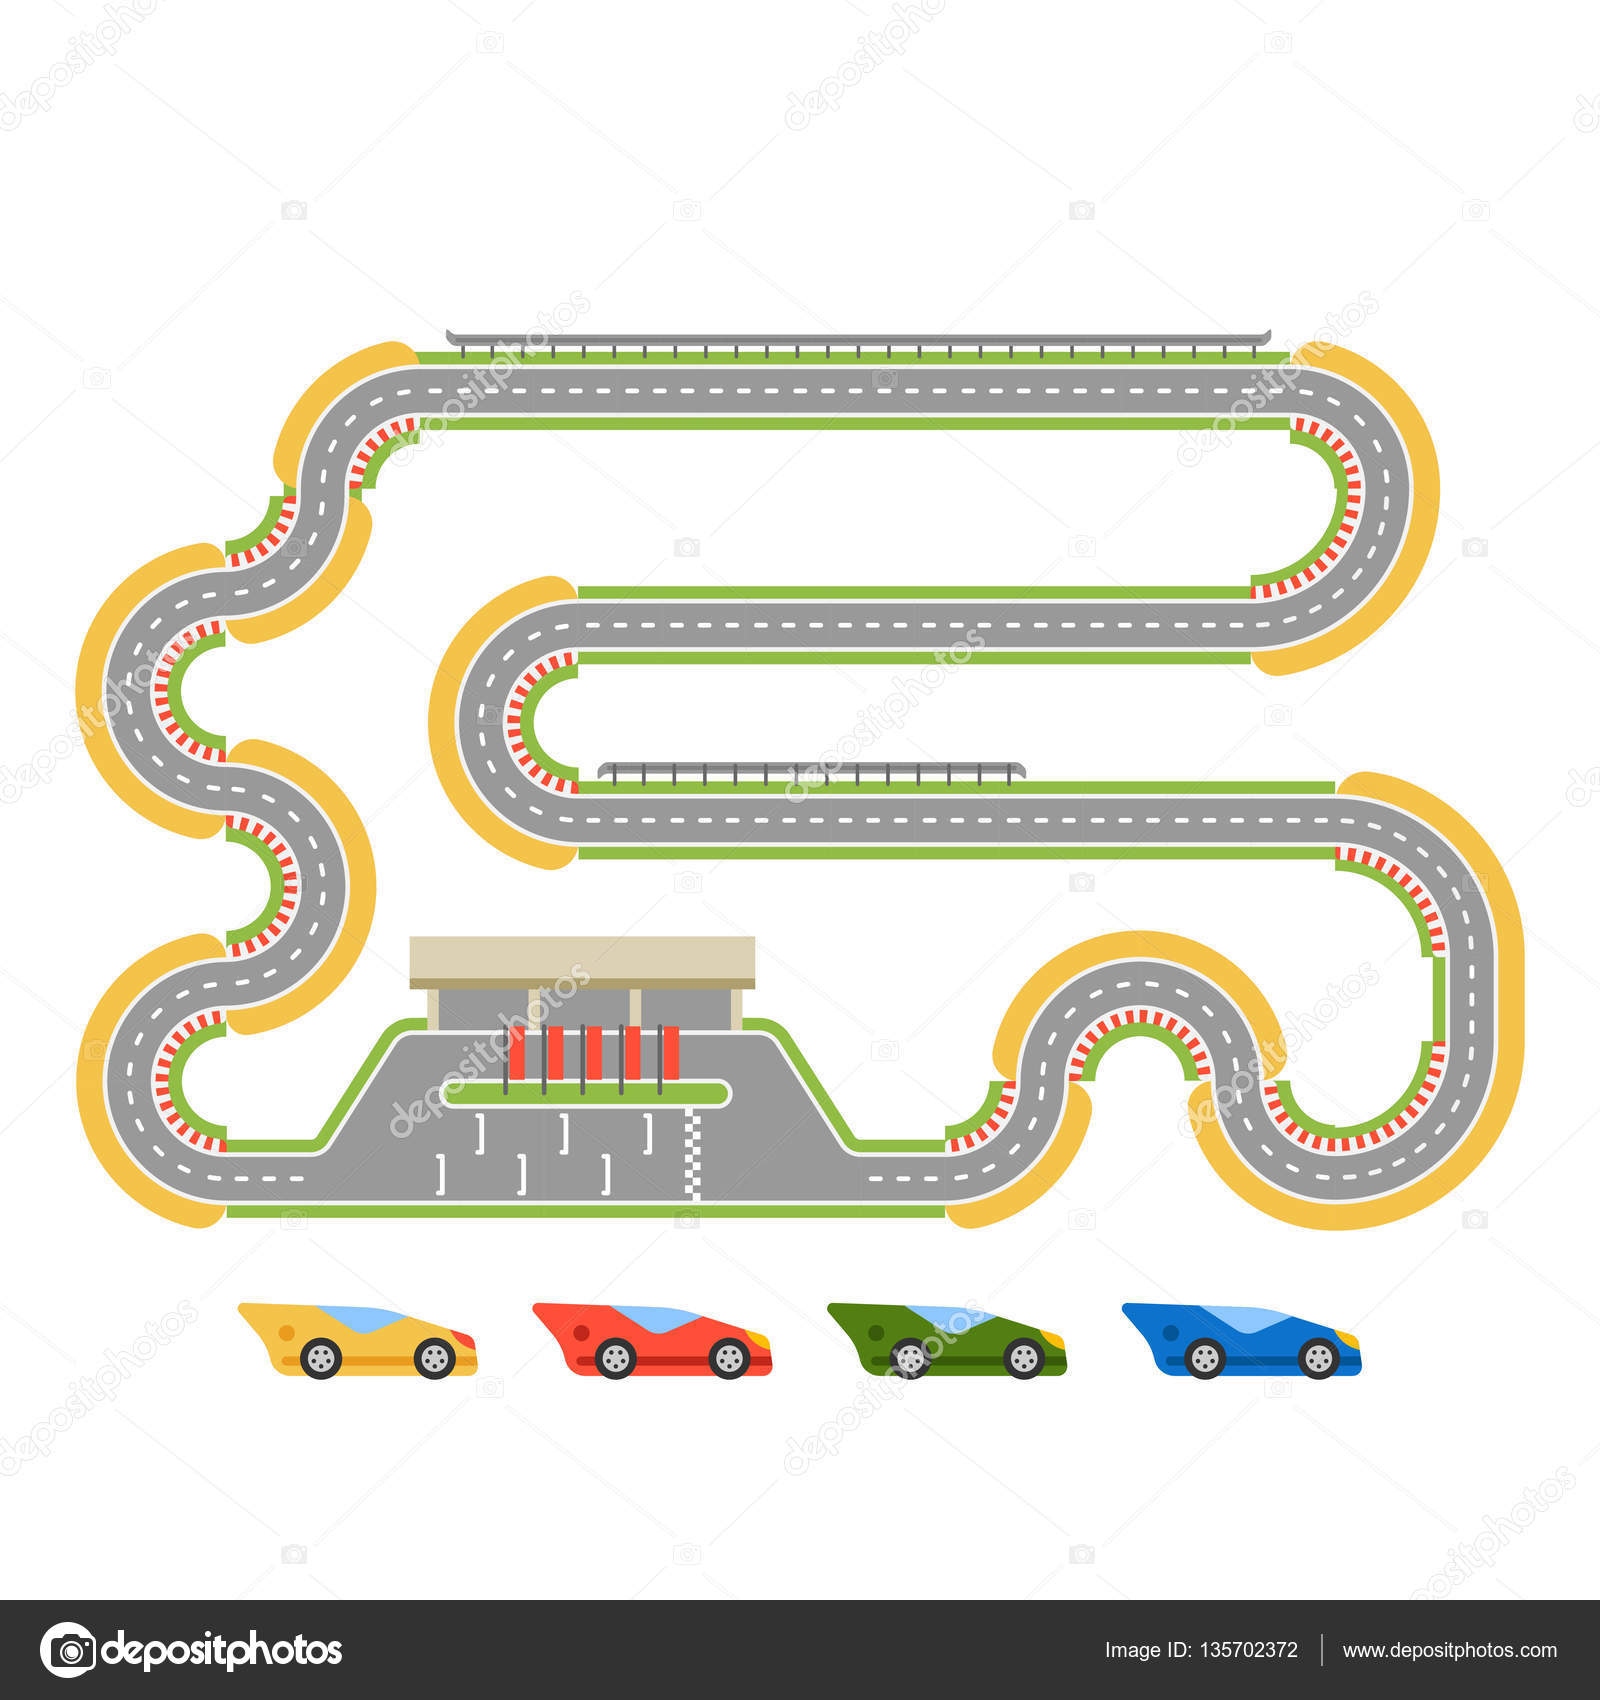 Curve clipart road track #2